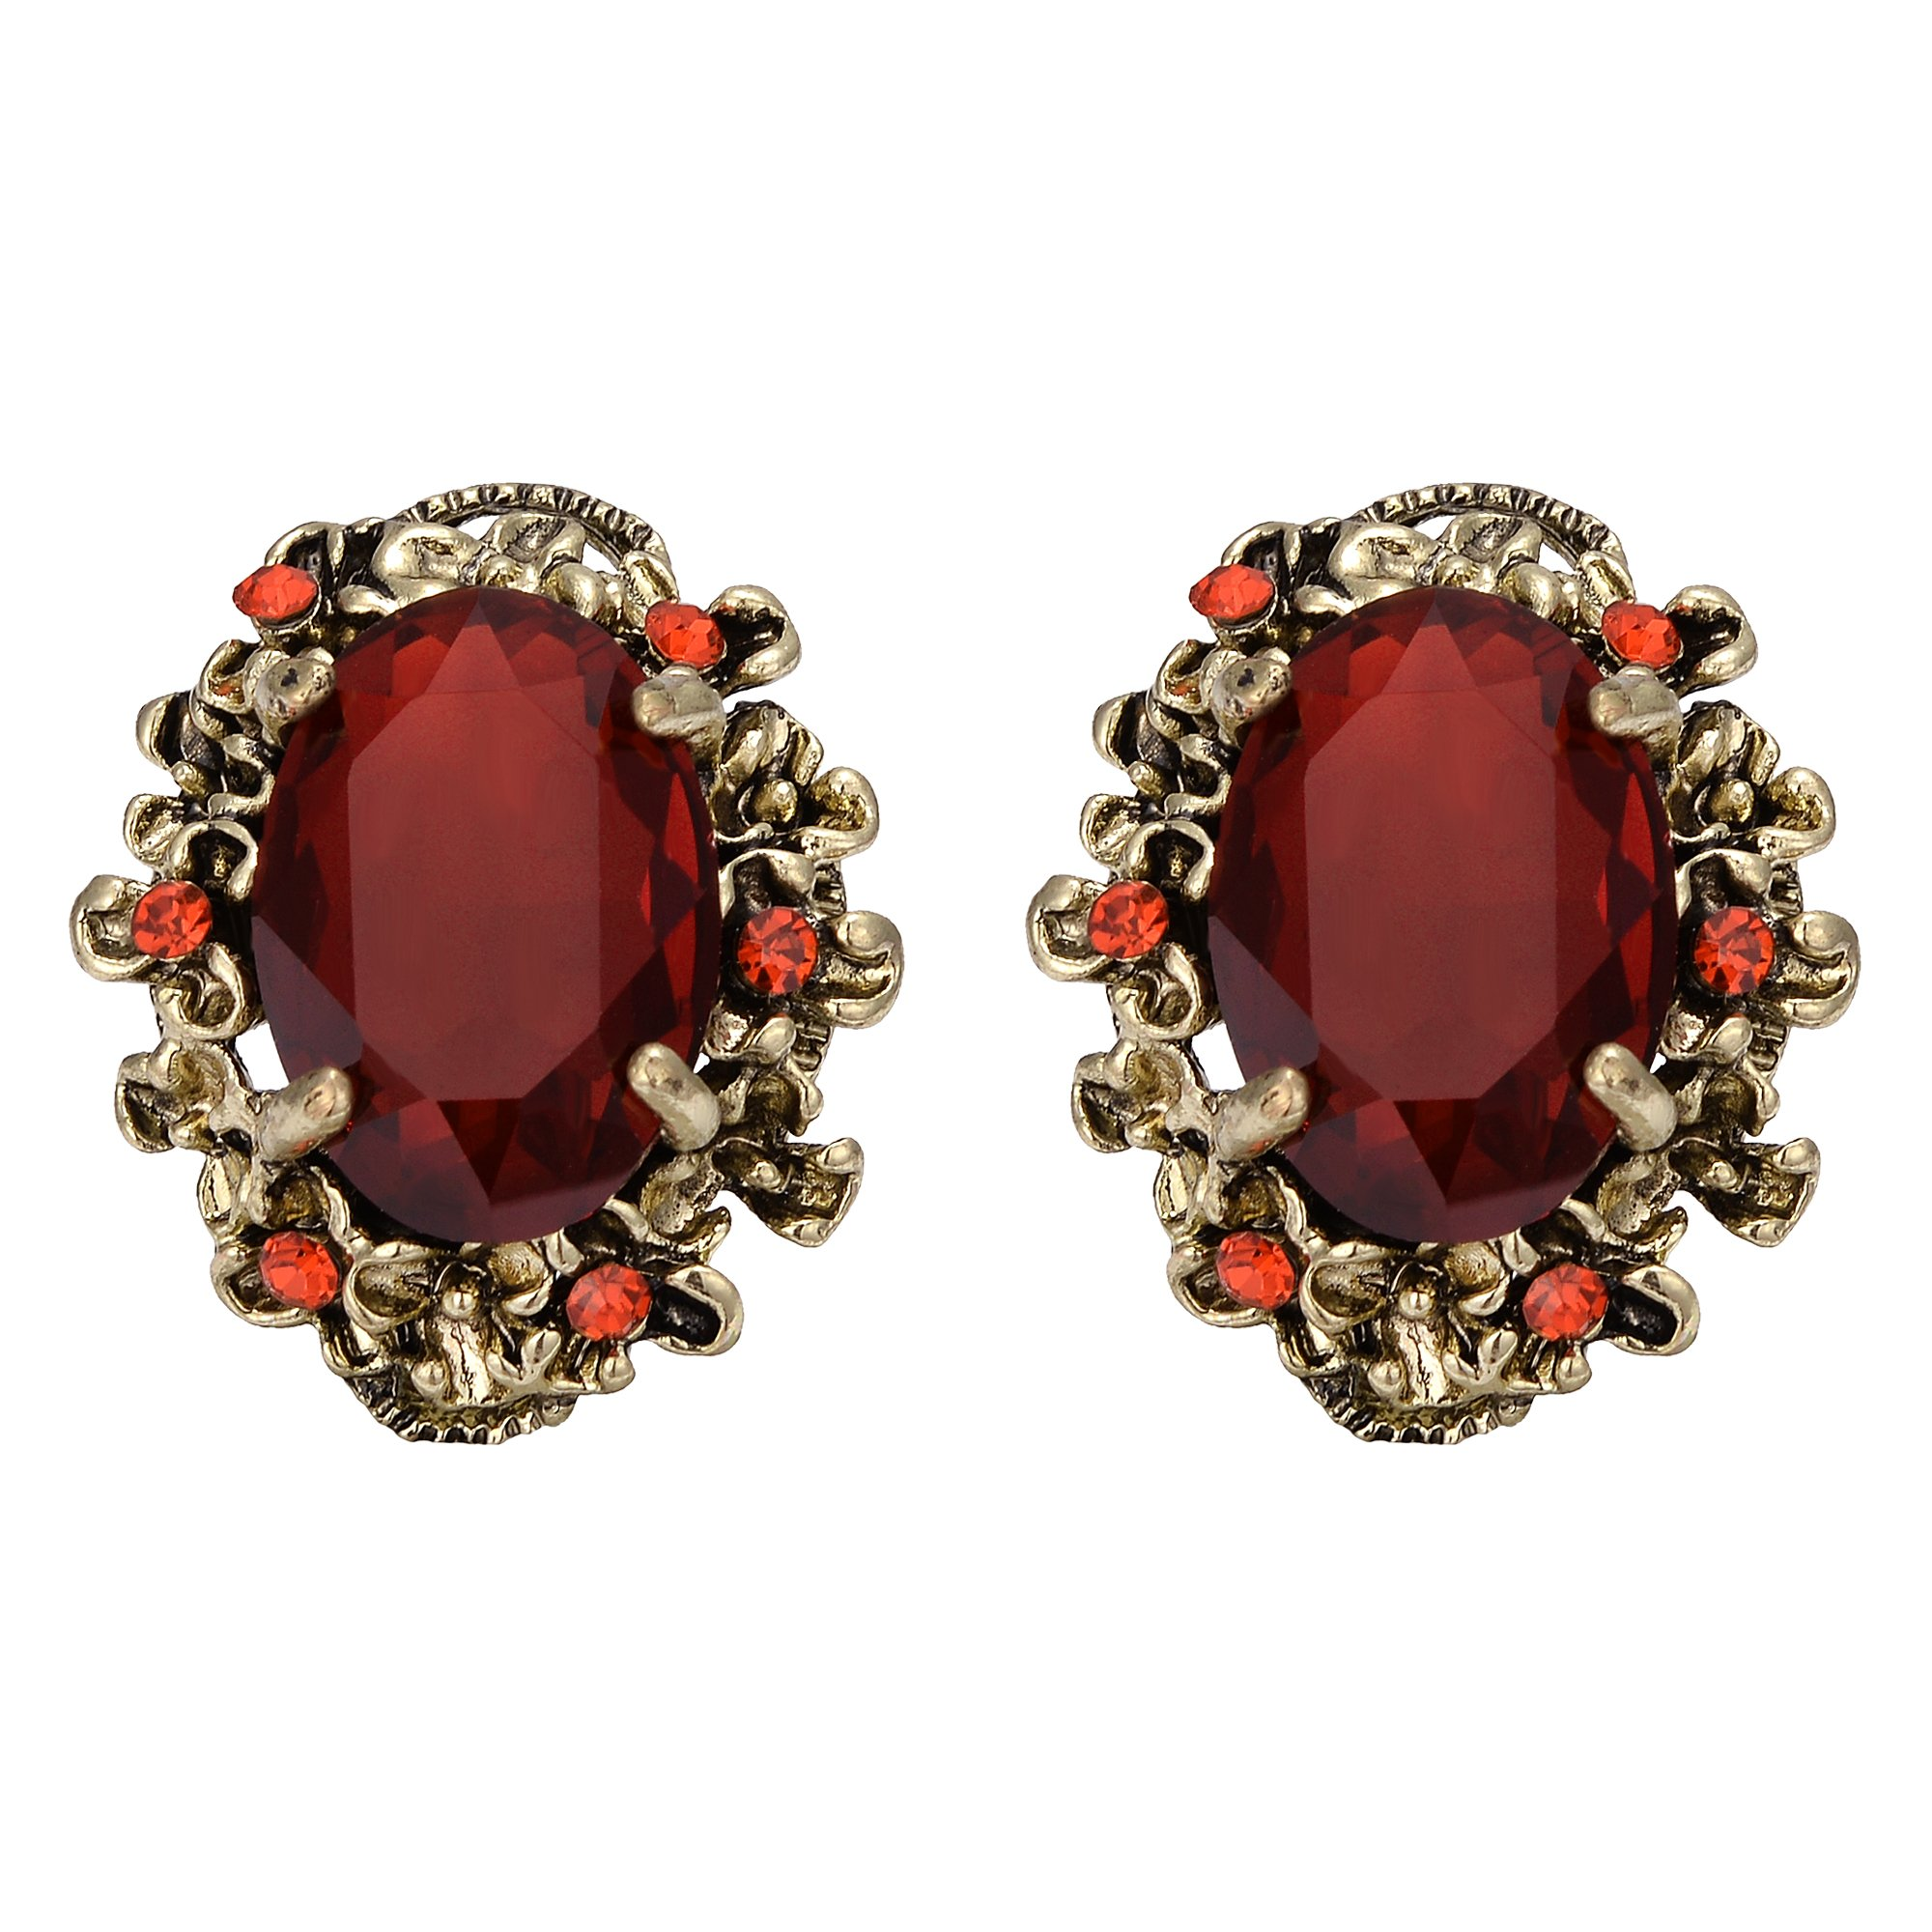 BriLove Antique-Gold-Toned Stud Earrings Women's Victorian Style Crystal Floral Scroll Cameo Inspired Oval Earrings Ruby Color